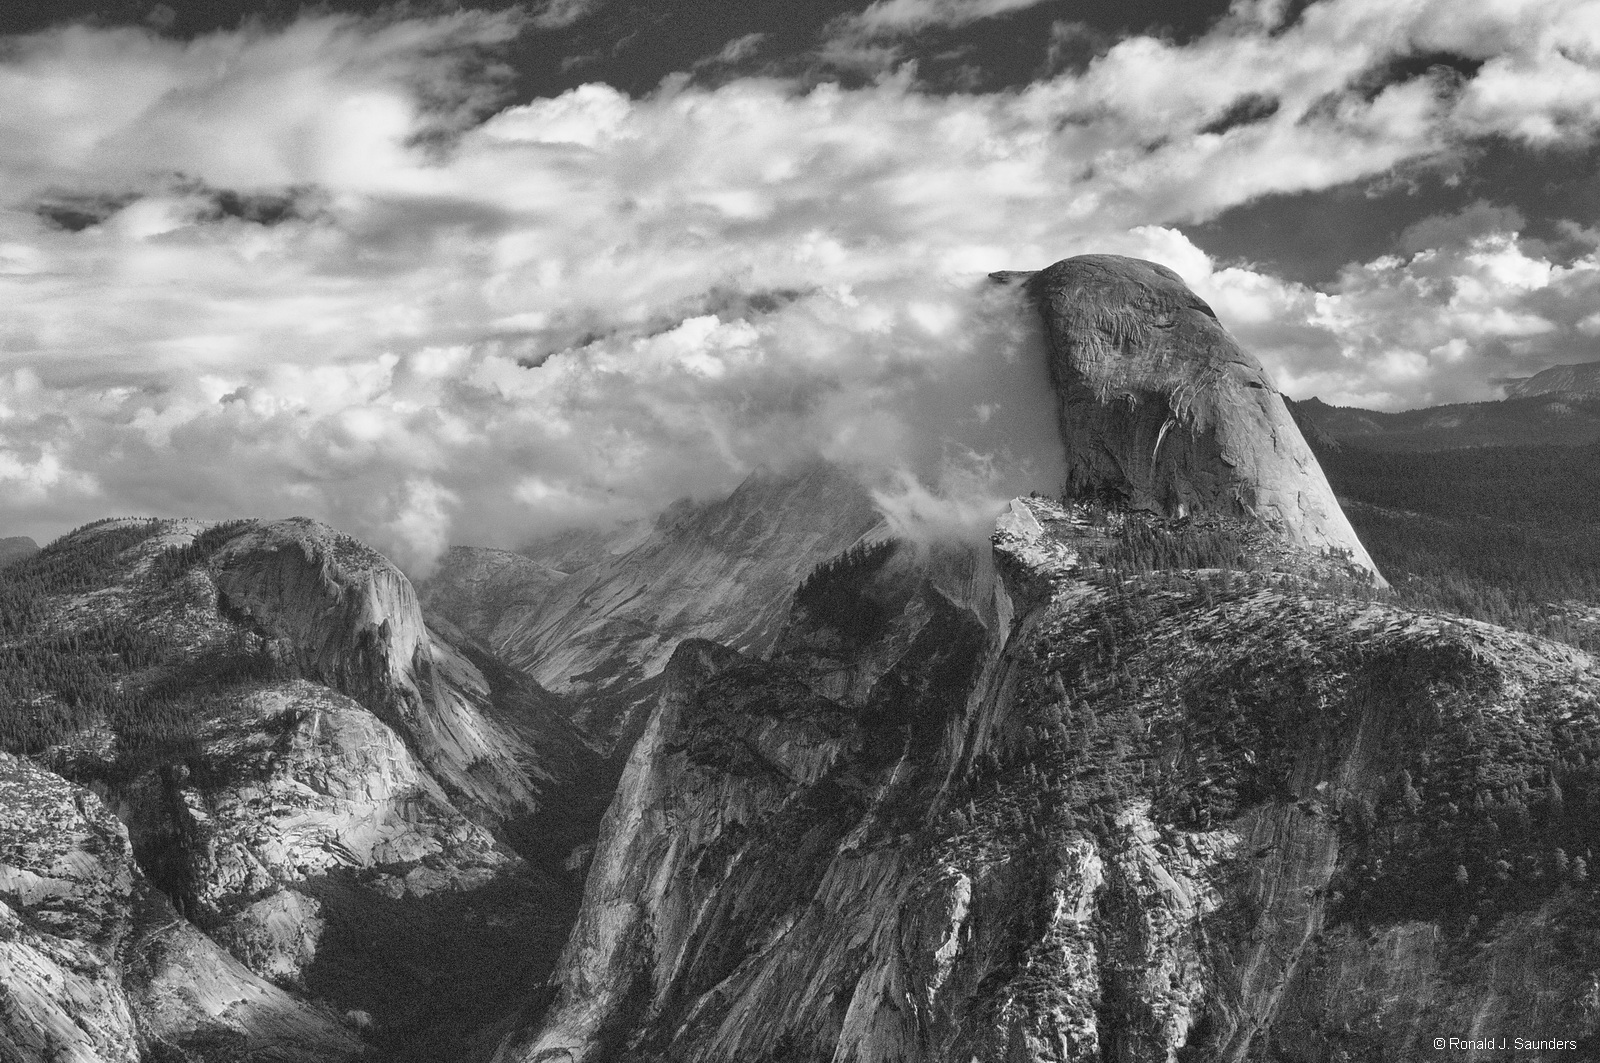 clouds, yosemite, half dome, B&W, landscape, ron, ron saunders, ronald, ronald j saunders, prints , photo